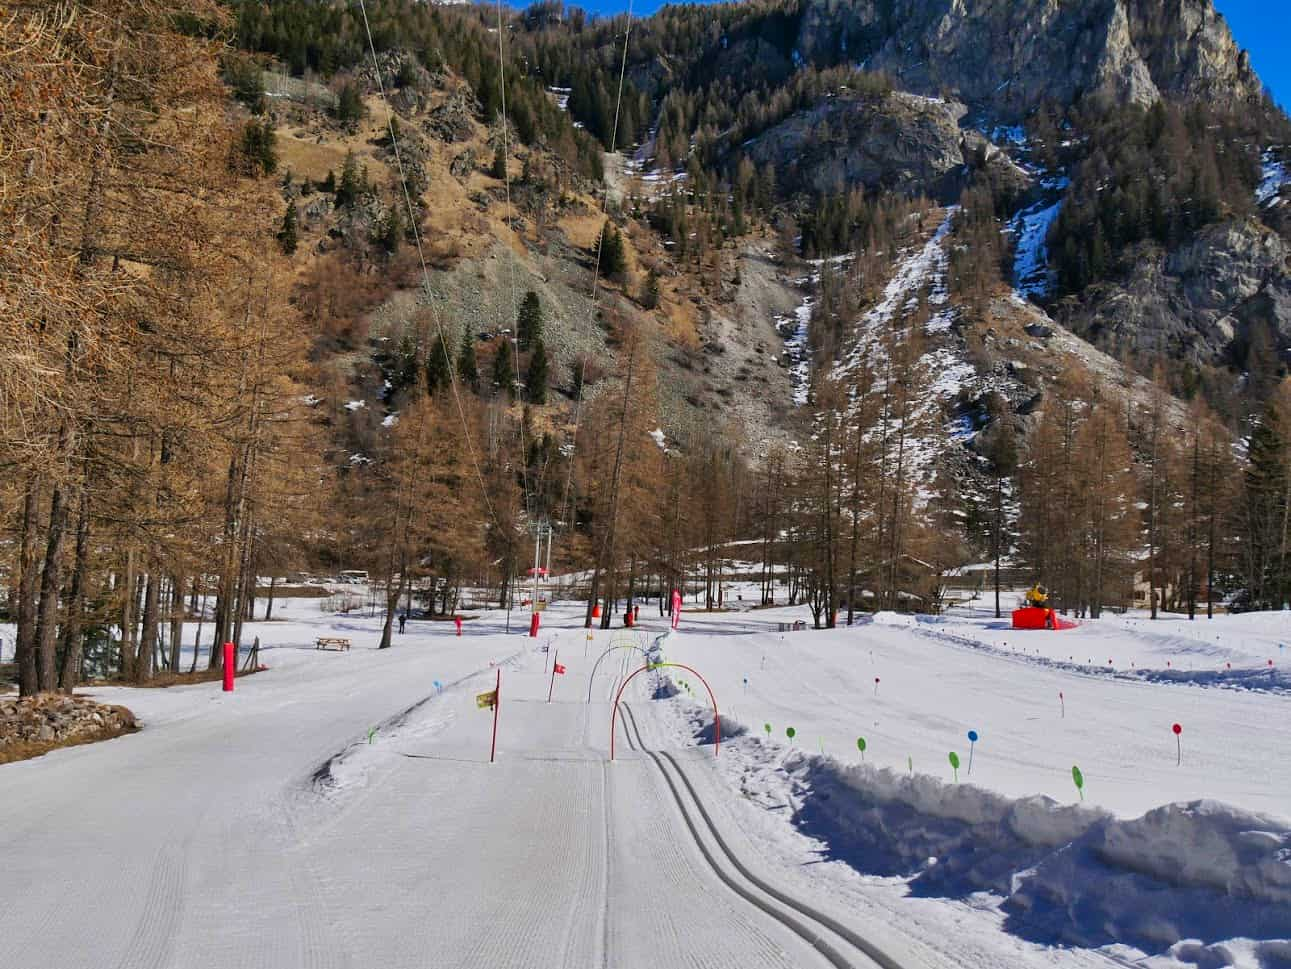 Beginners Nordic Ski area with slalom flags and arches with bells underneath